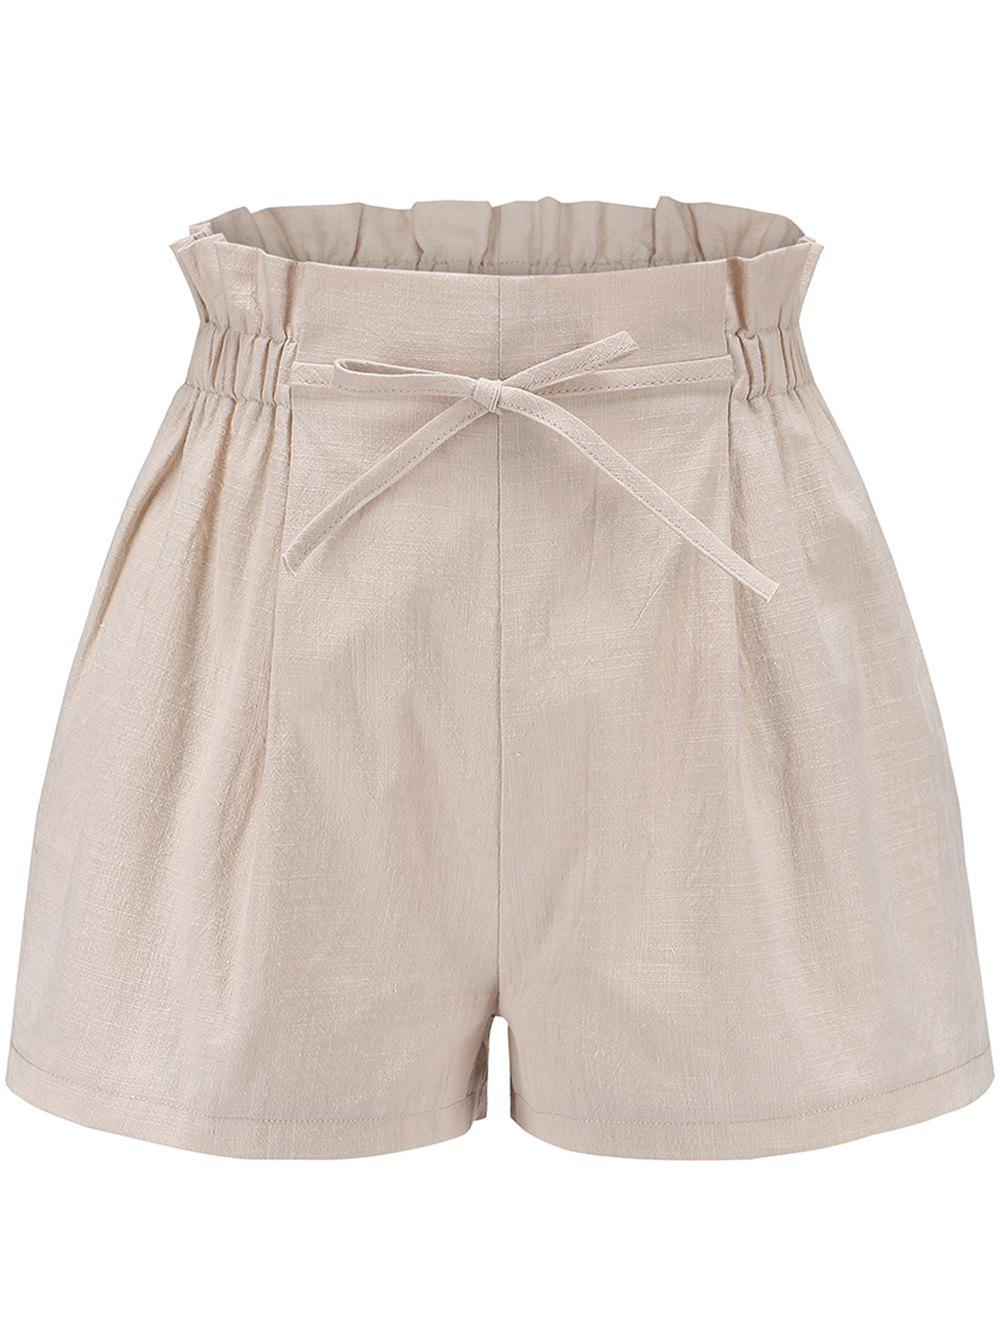 Women Elastic Waist Casual Comfy Cotton Linen Beach Shorts with Drawstring - BEIGE S